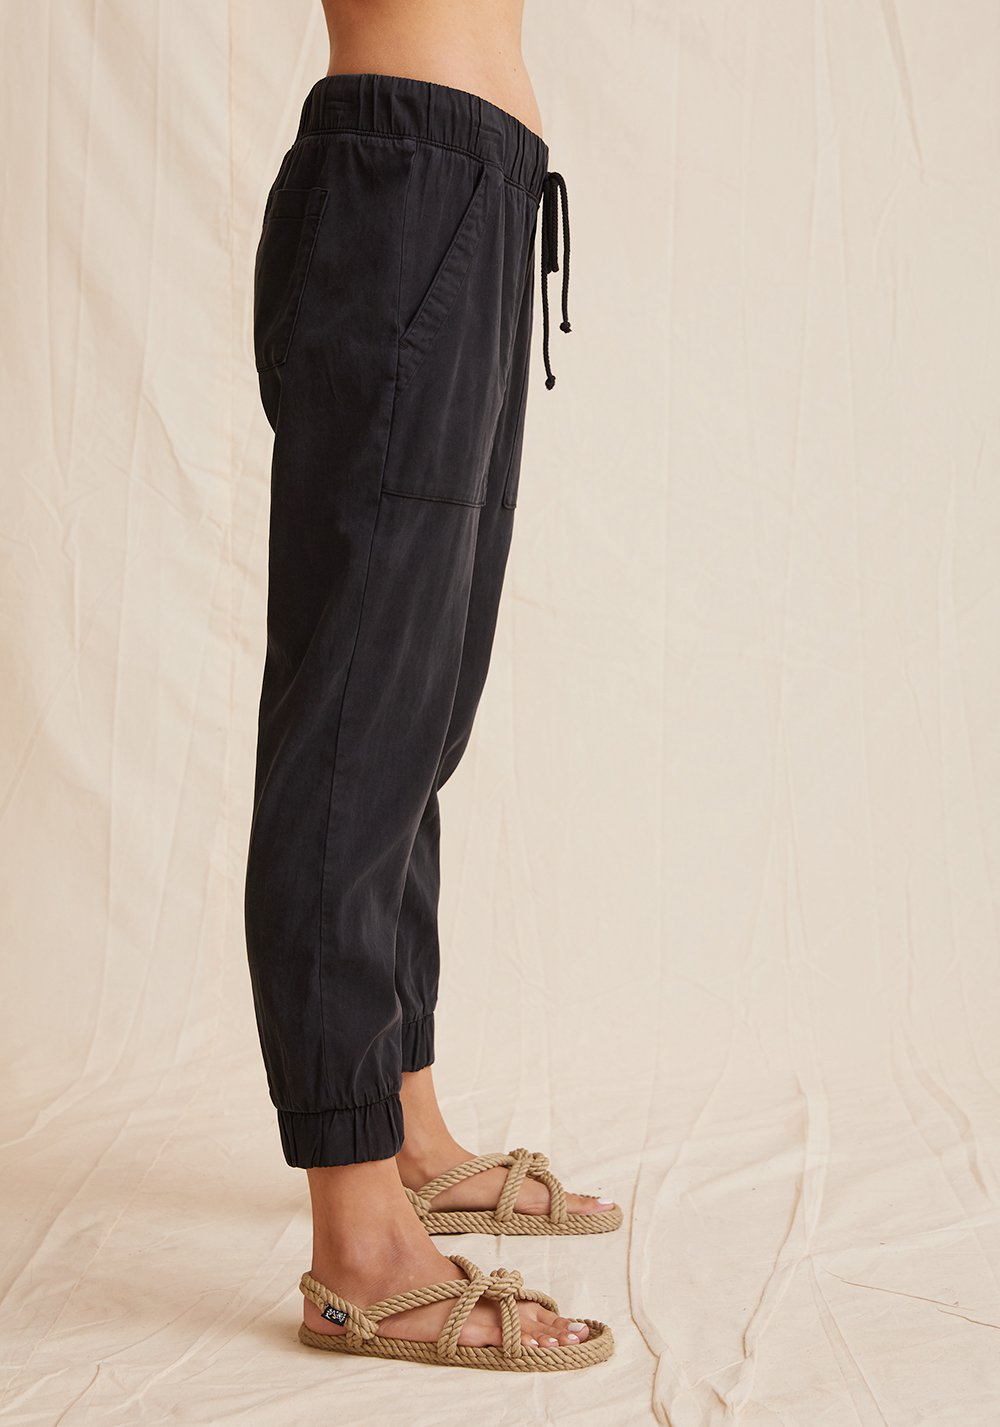 Pocket Jogger in Vintage Black